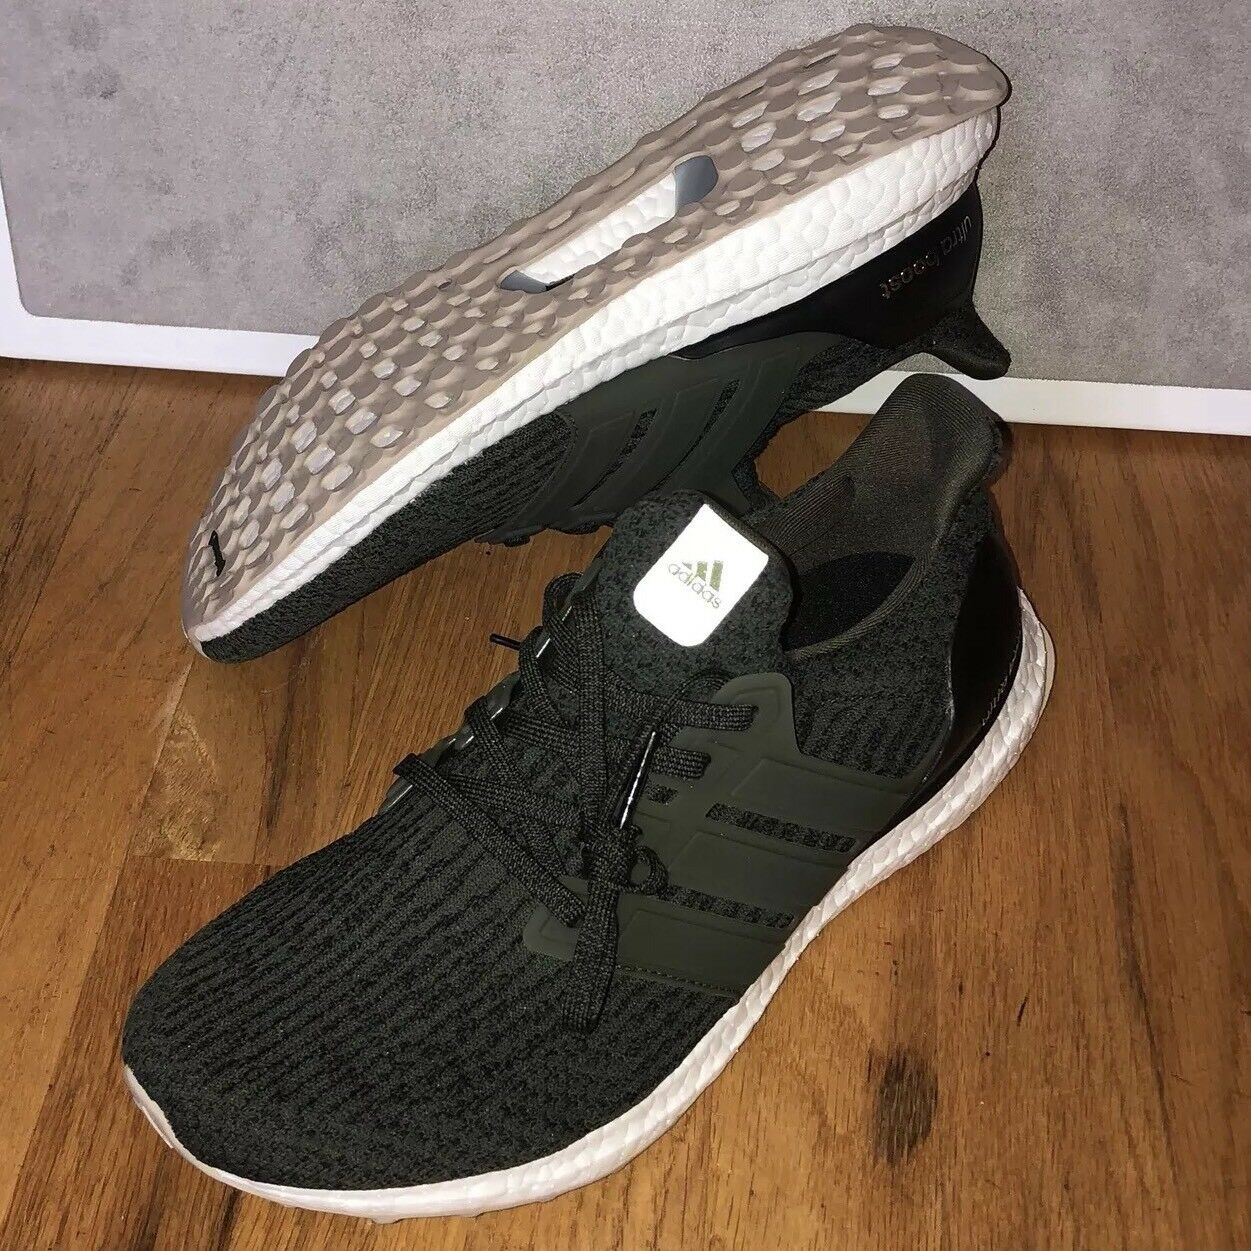 Adidas Shoes Ultra Boost Night Cargo Olive Green S80637 Mens Shoes Adidas Size 9 New DS f6b5d0